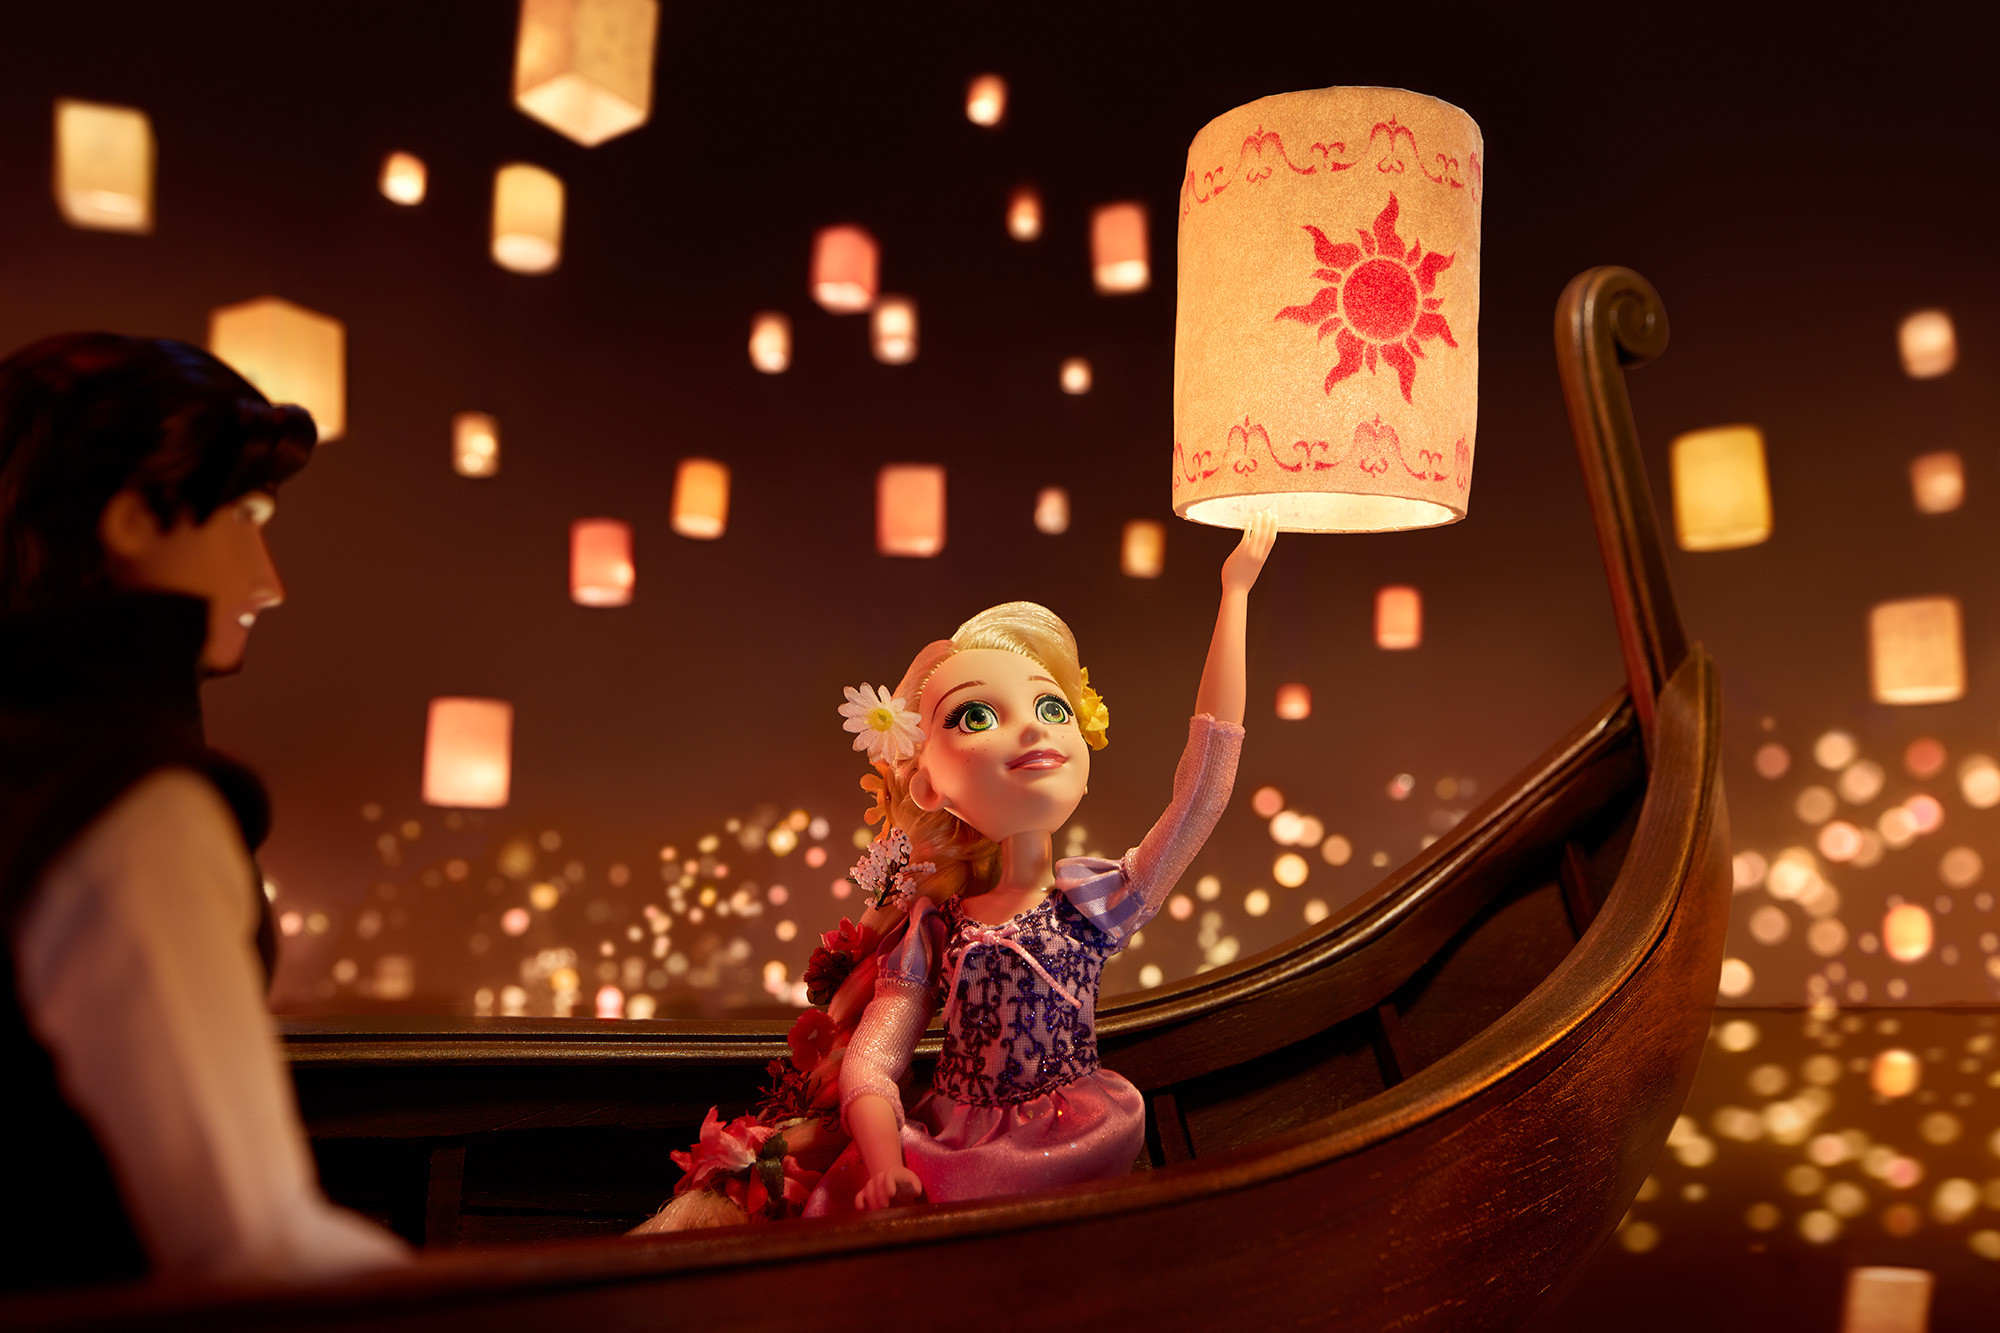 1920x1080 Tangled Floating Lanterns Desktop Wallpaper » High Definition Wallpapers, Backgrounds